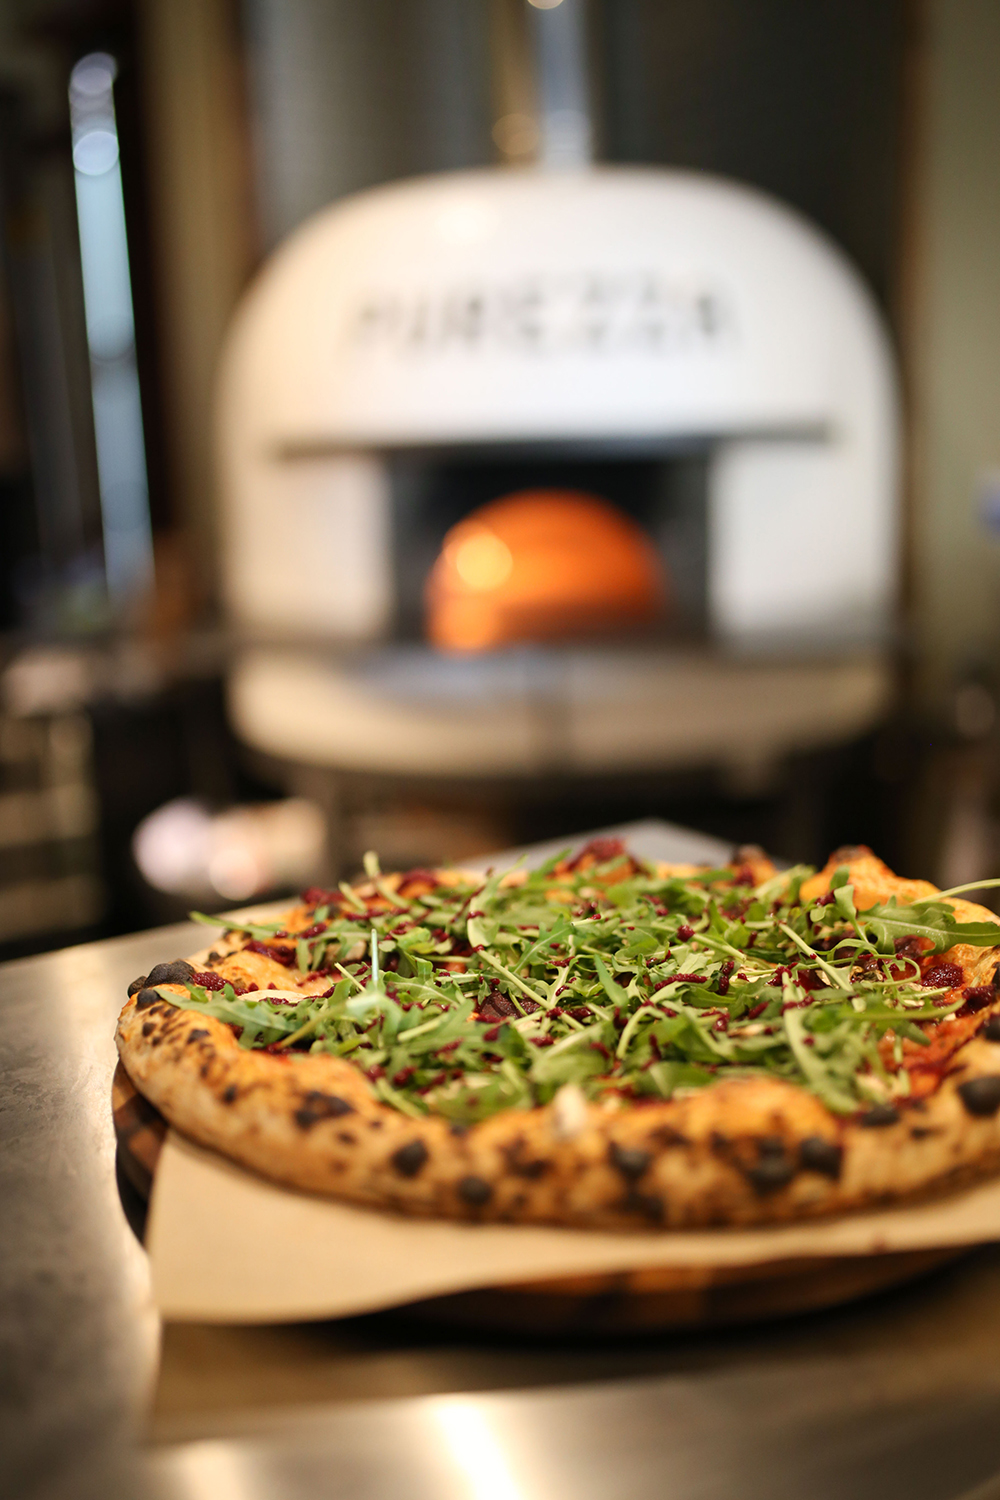 Purezza-vegan-interior-design-branding-cool-restaurant-pizza-brighton-food-oven